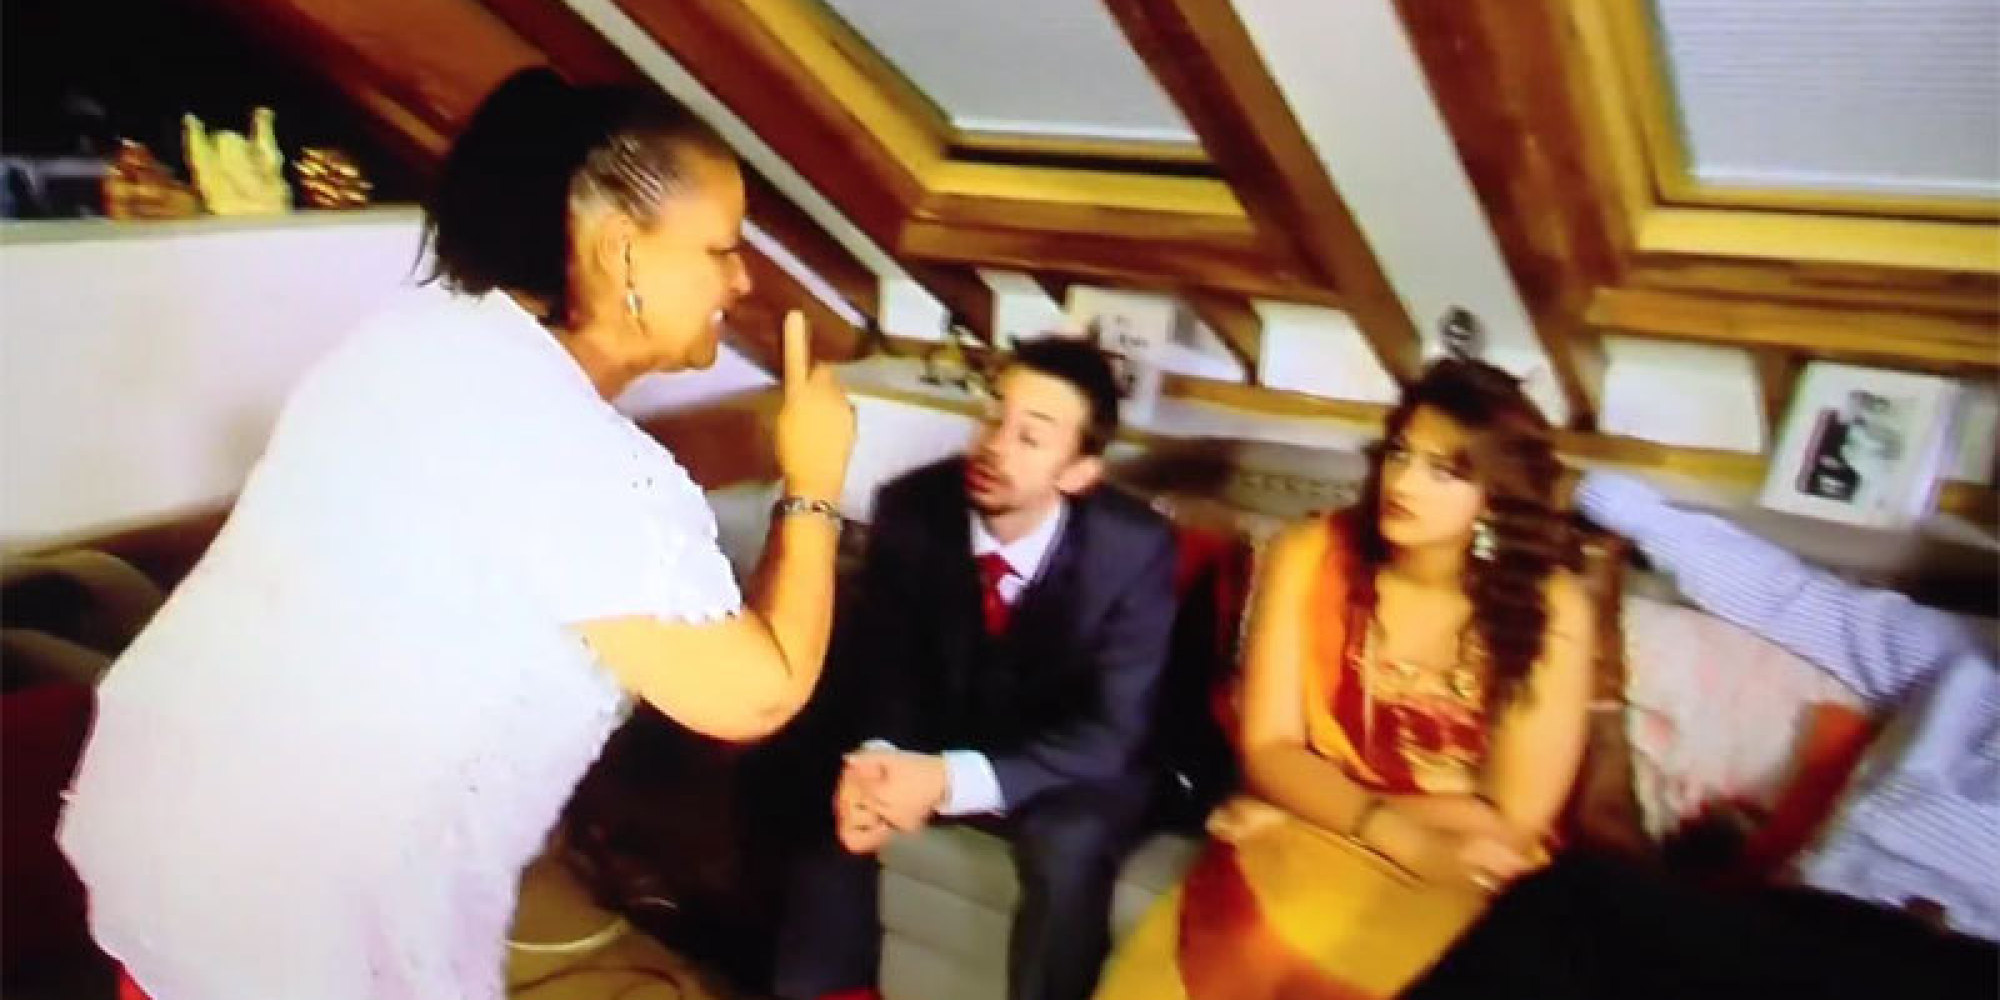 39 Come Dine With Me 39 Contestant Heather Horsfall Could Be